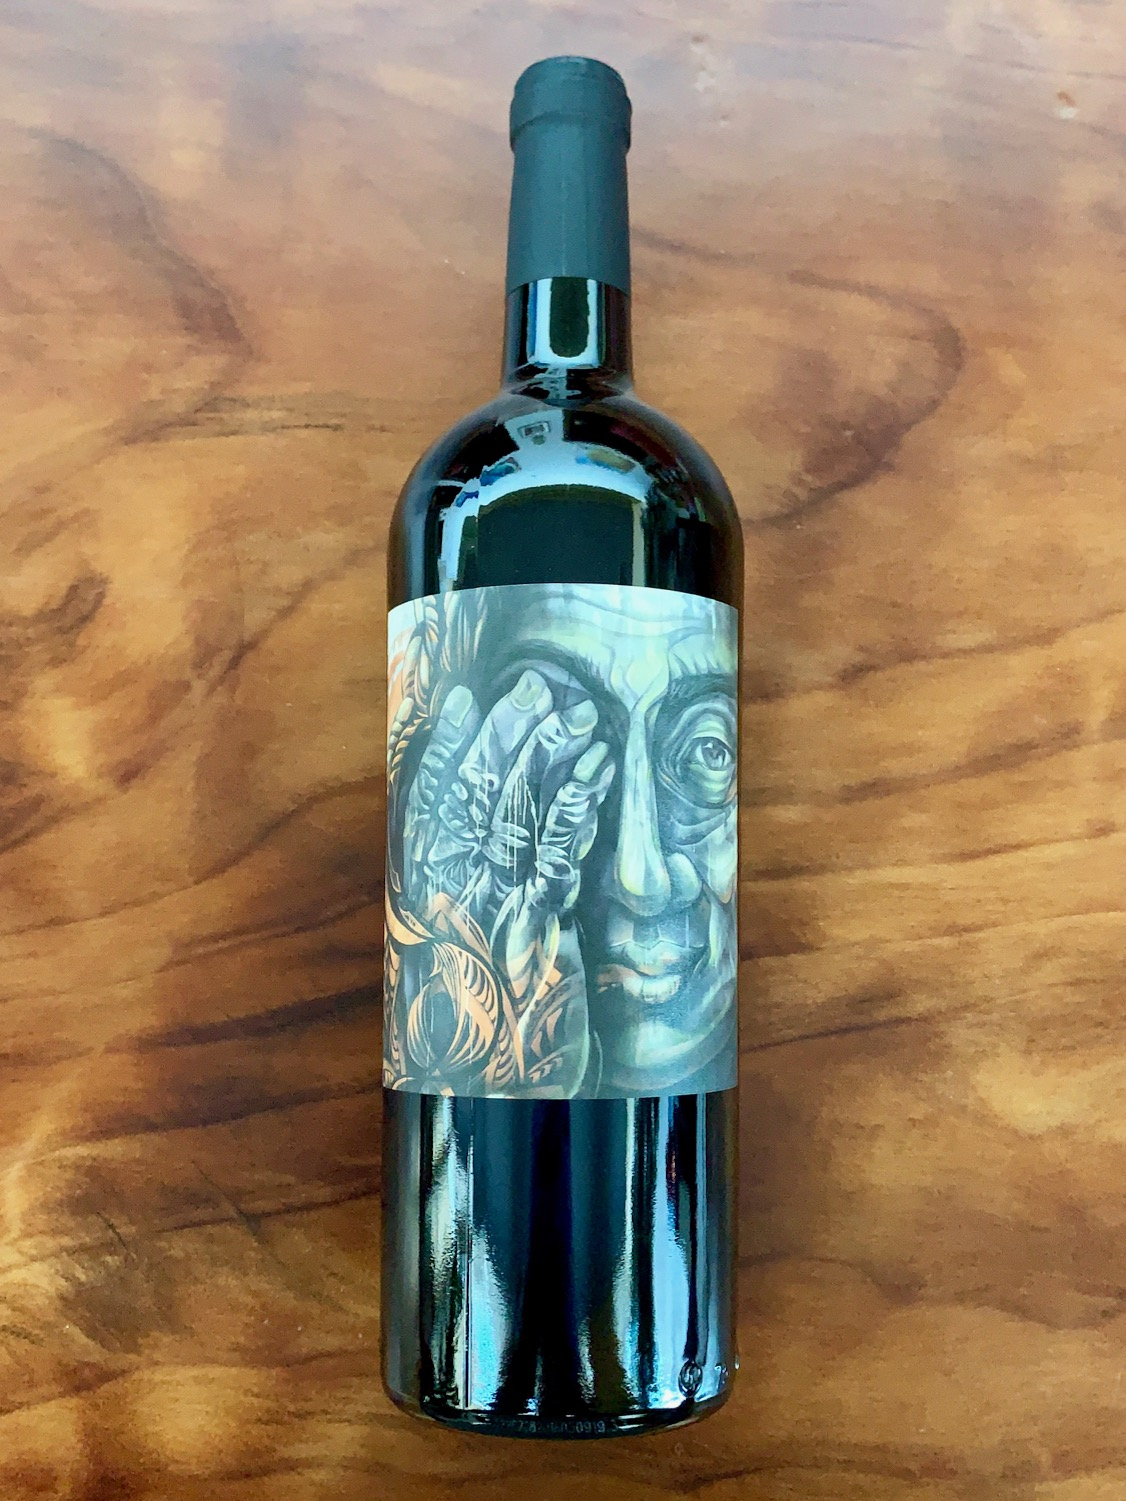 2016 The Psychic Alexander Valley Cabernet